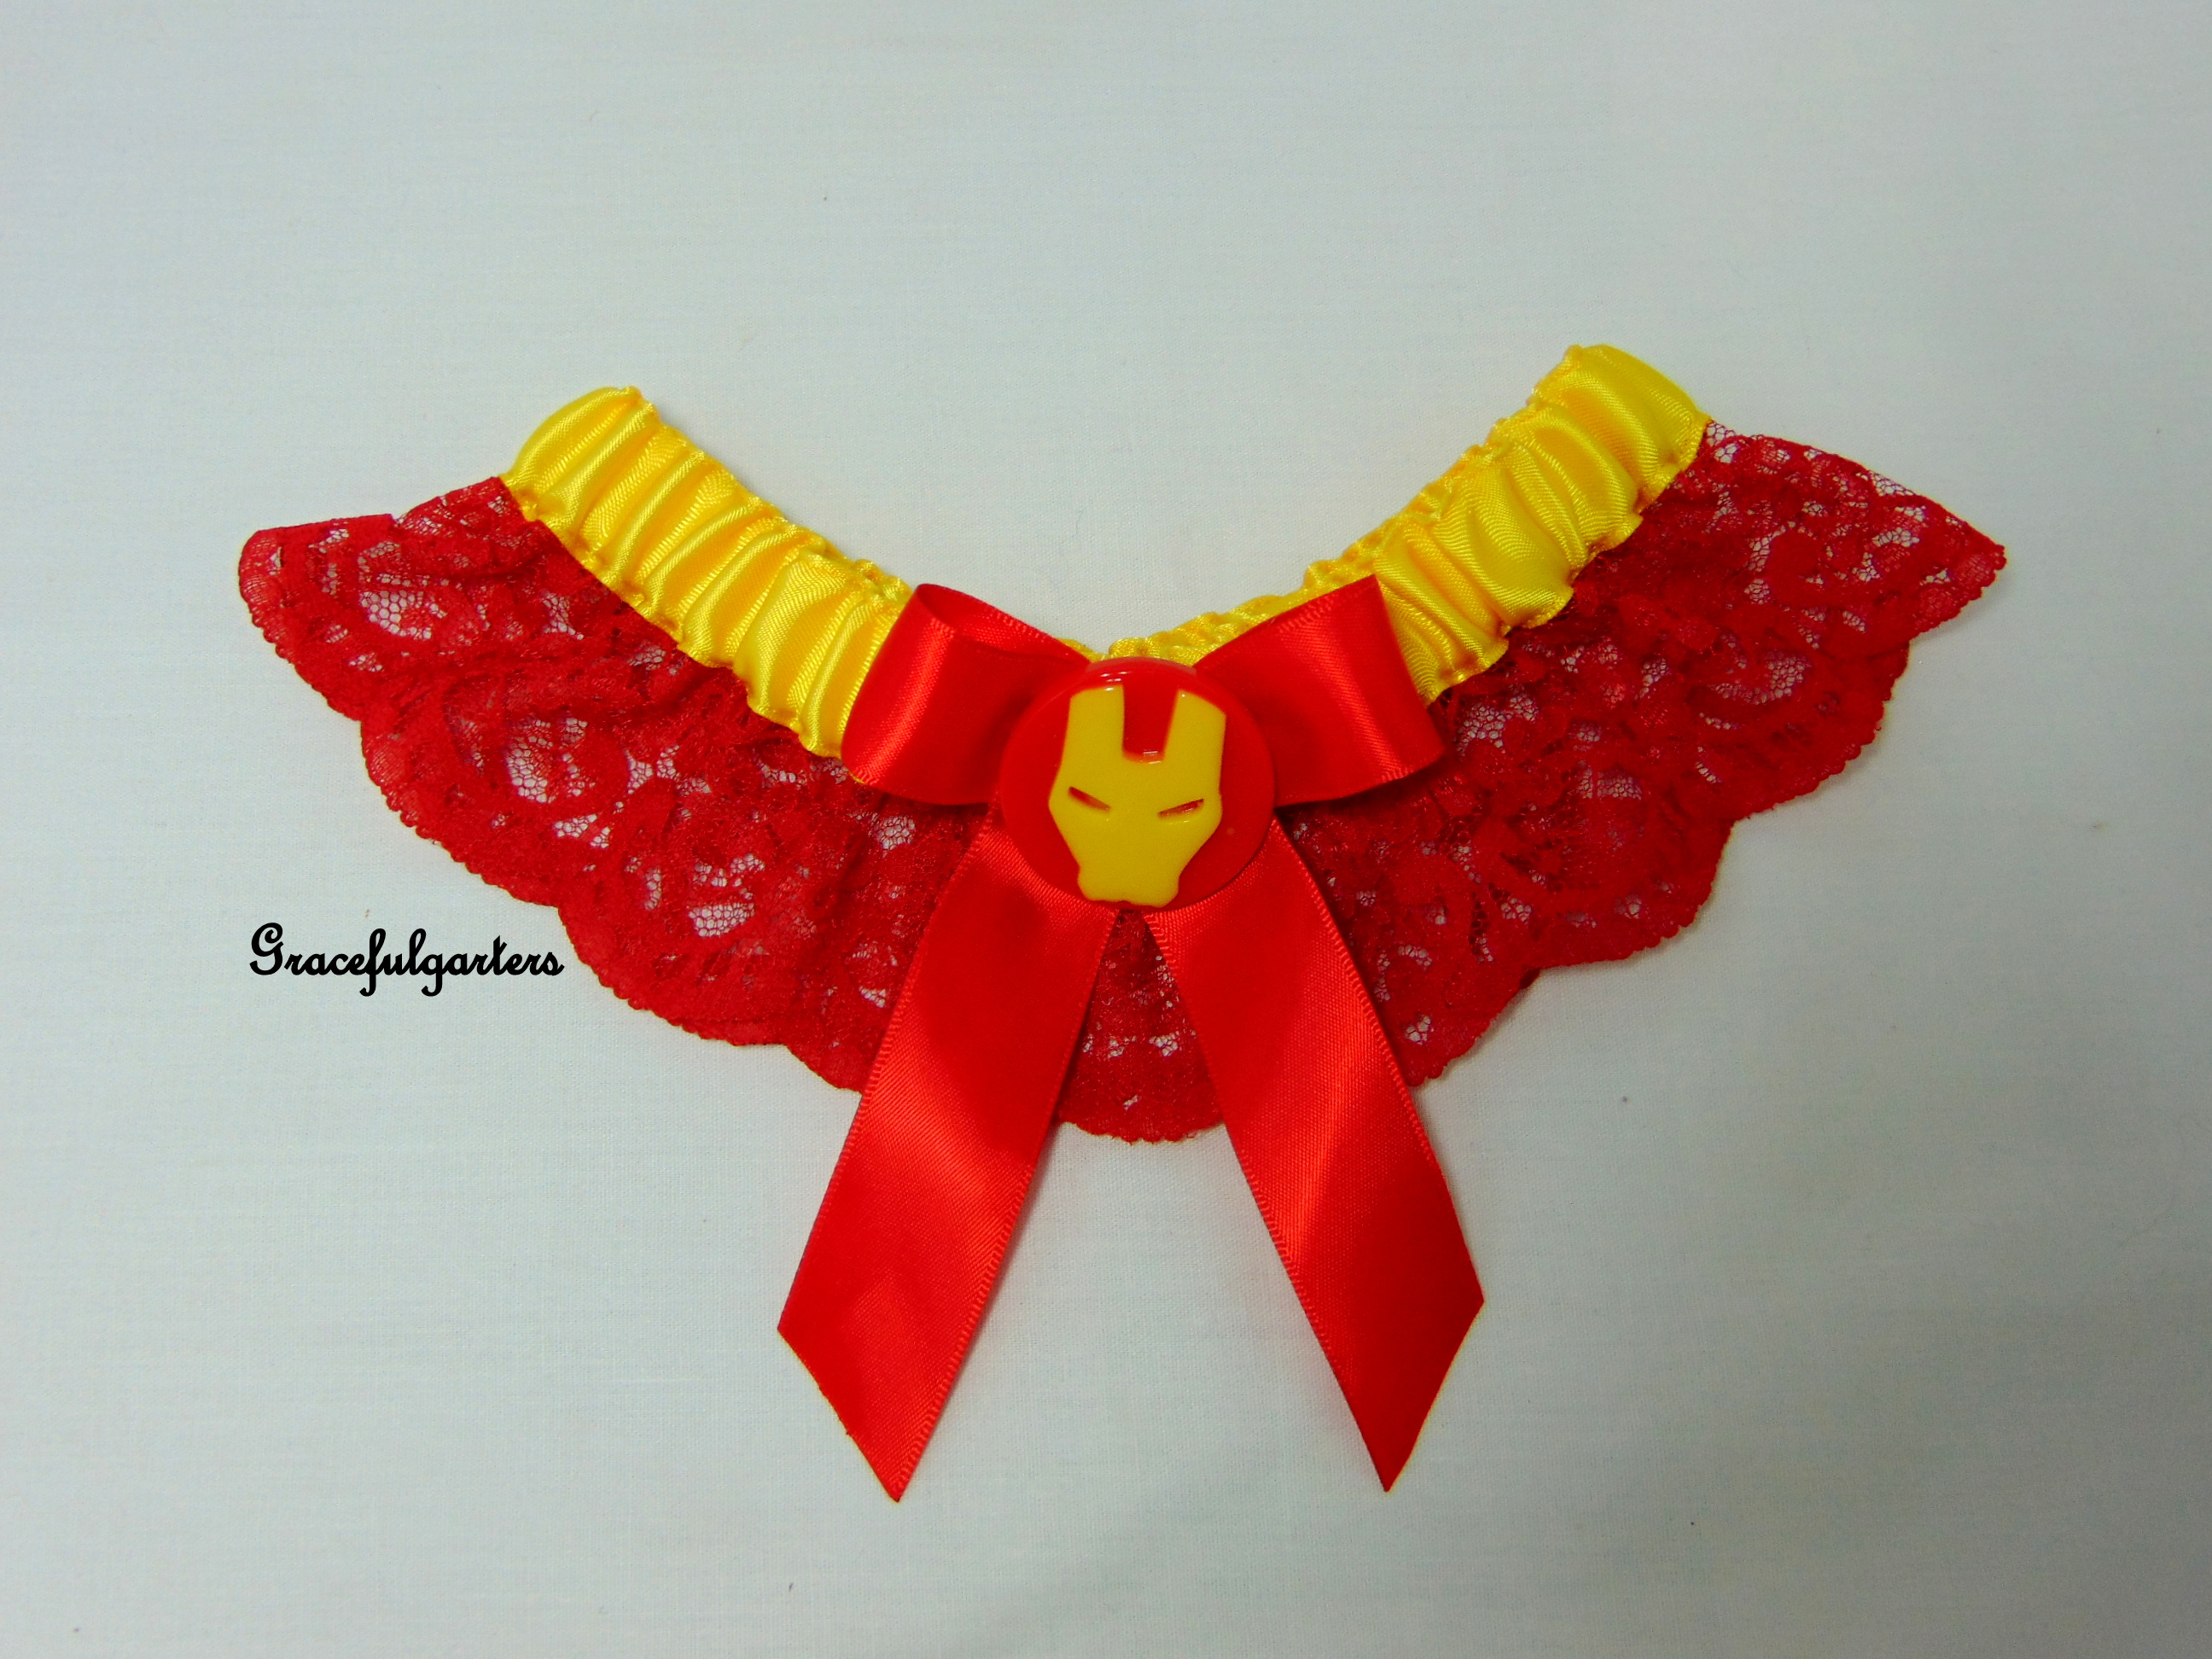 Avengers Ironman Lace Bridal Wedding Garter